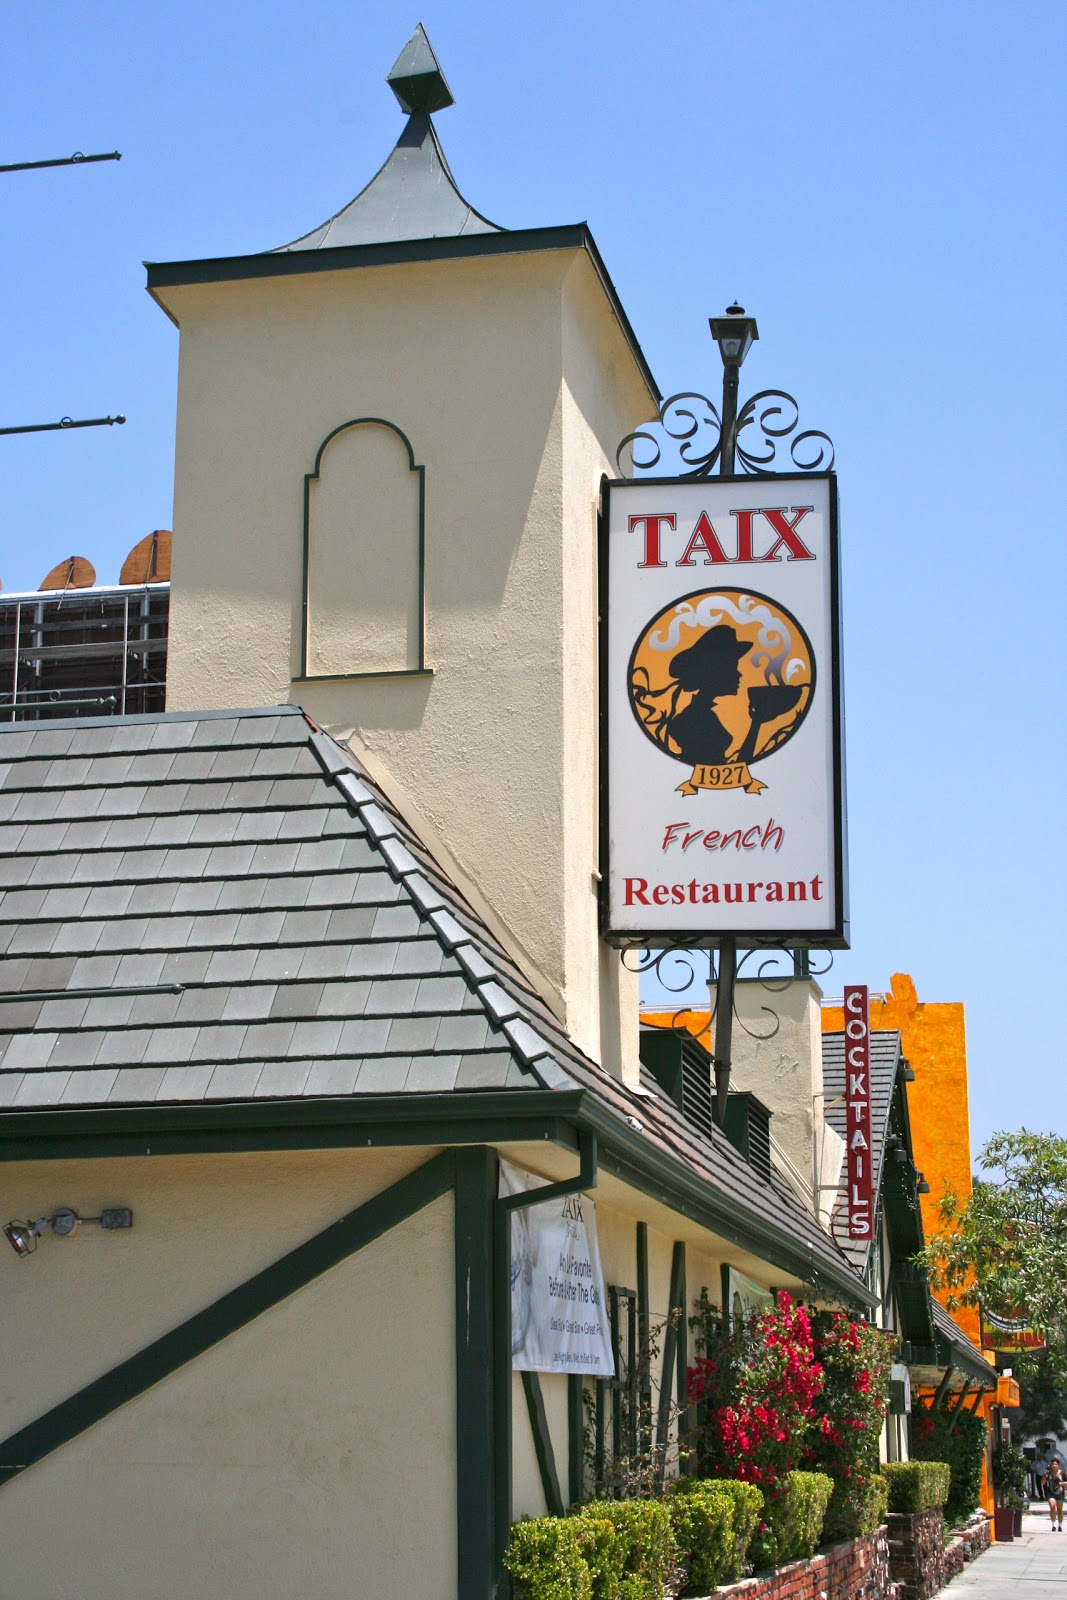 taix french restaurant 1911 sunset blvd los angeles ca 90026 213 484 1265 info on yelp